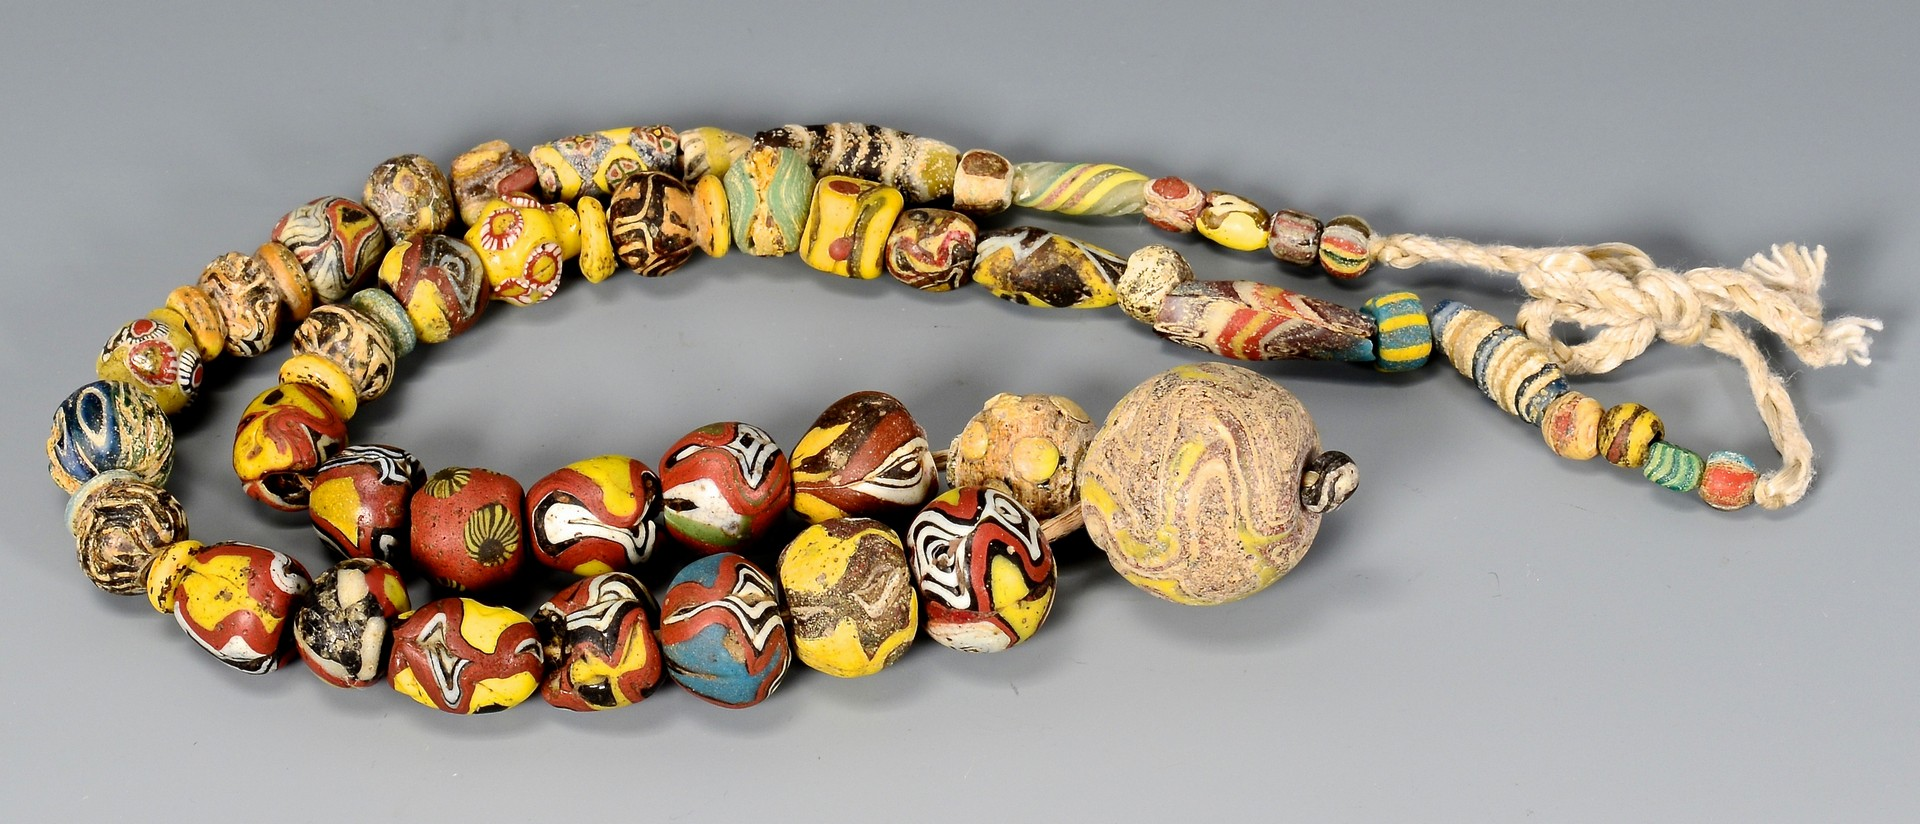 Lot 4010146: Near Eastern Mosaic Glass Bead Necklace